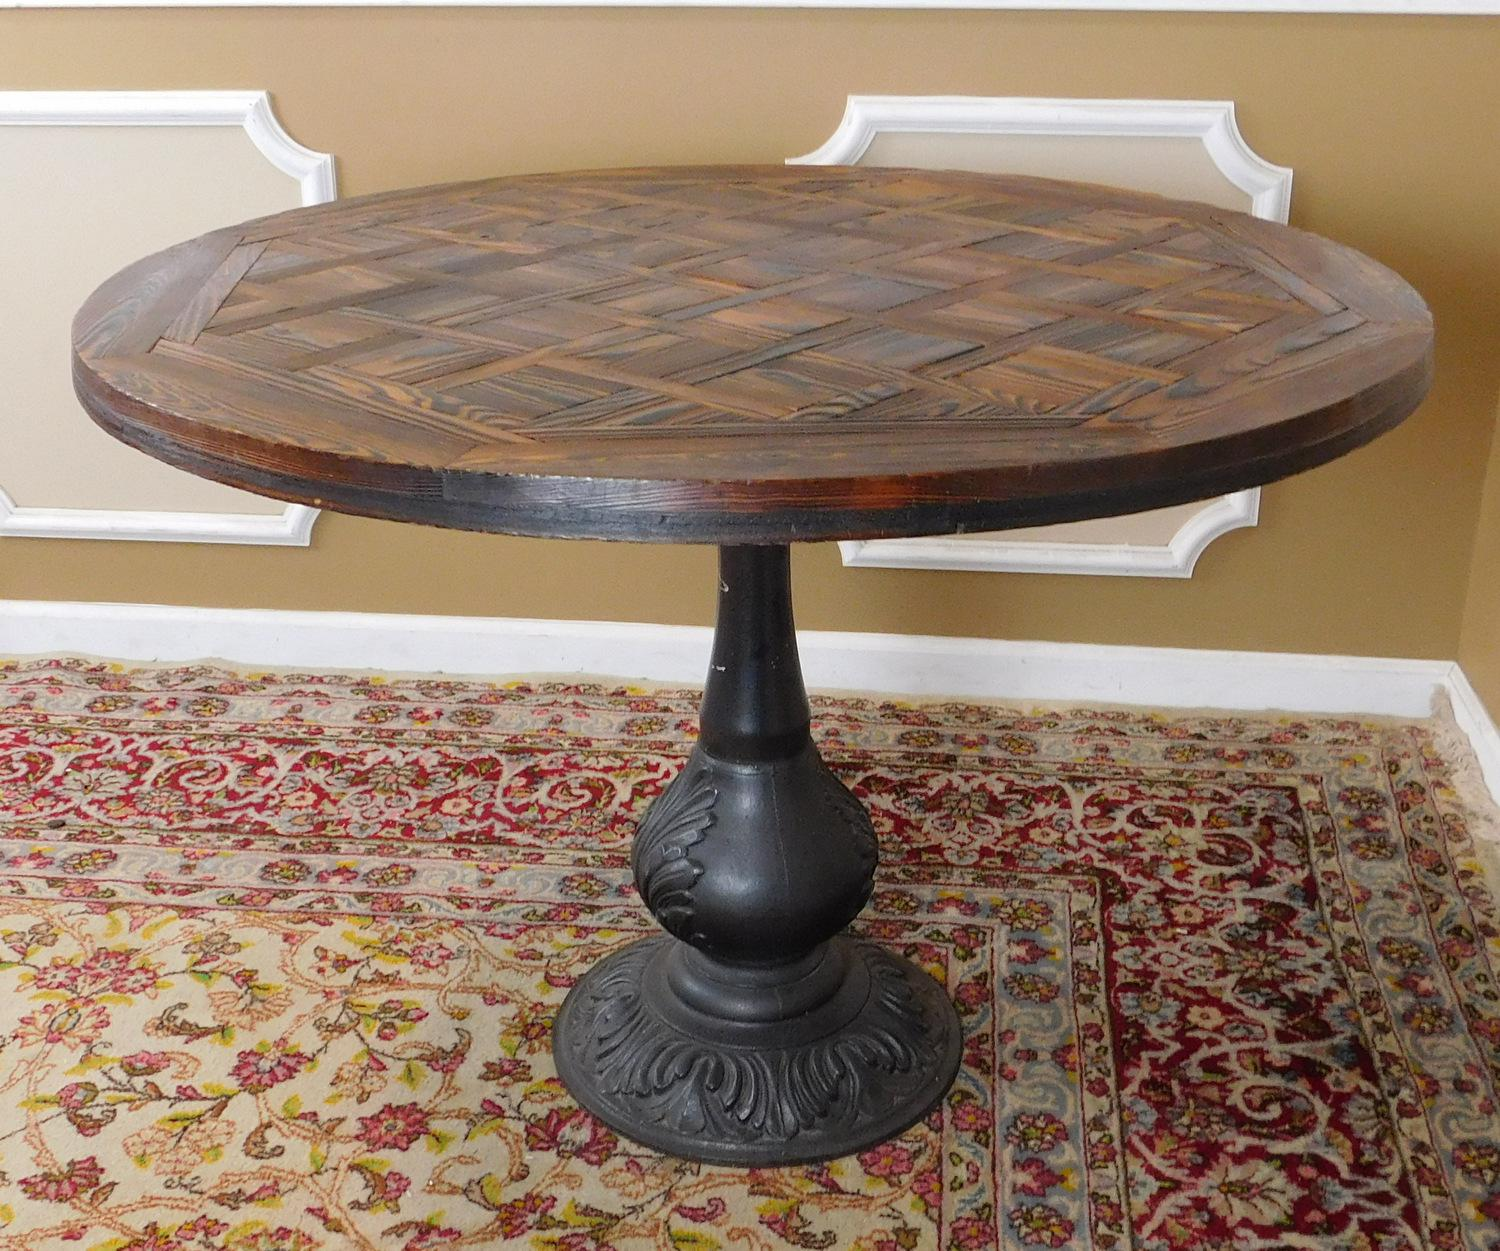 Traditional Hand Hewn Sectional Parquet Oak Top Round Kitchen Dining Table  W/ Cast Iron Base